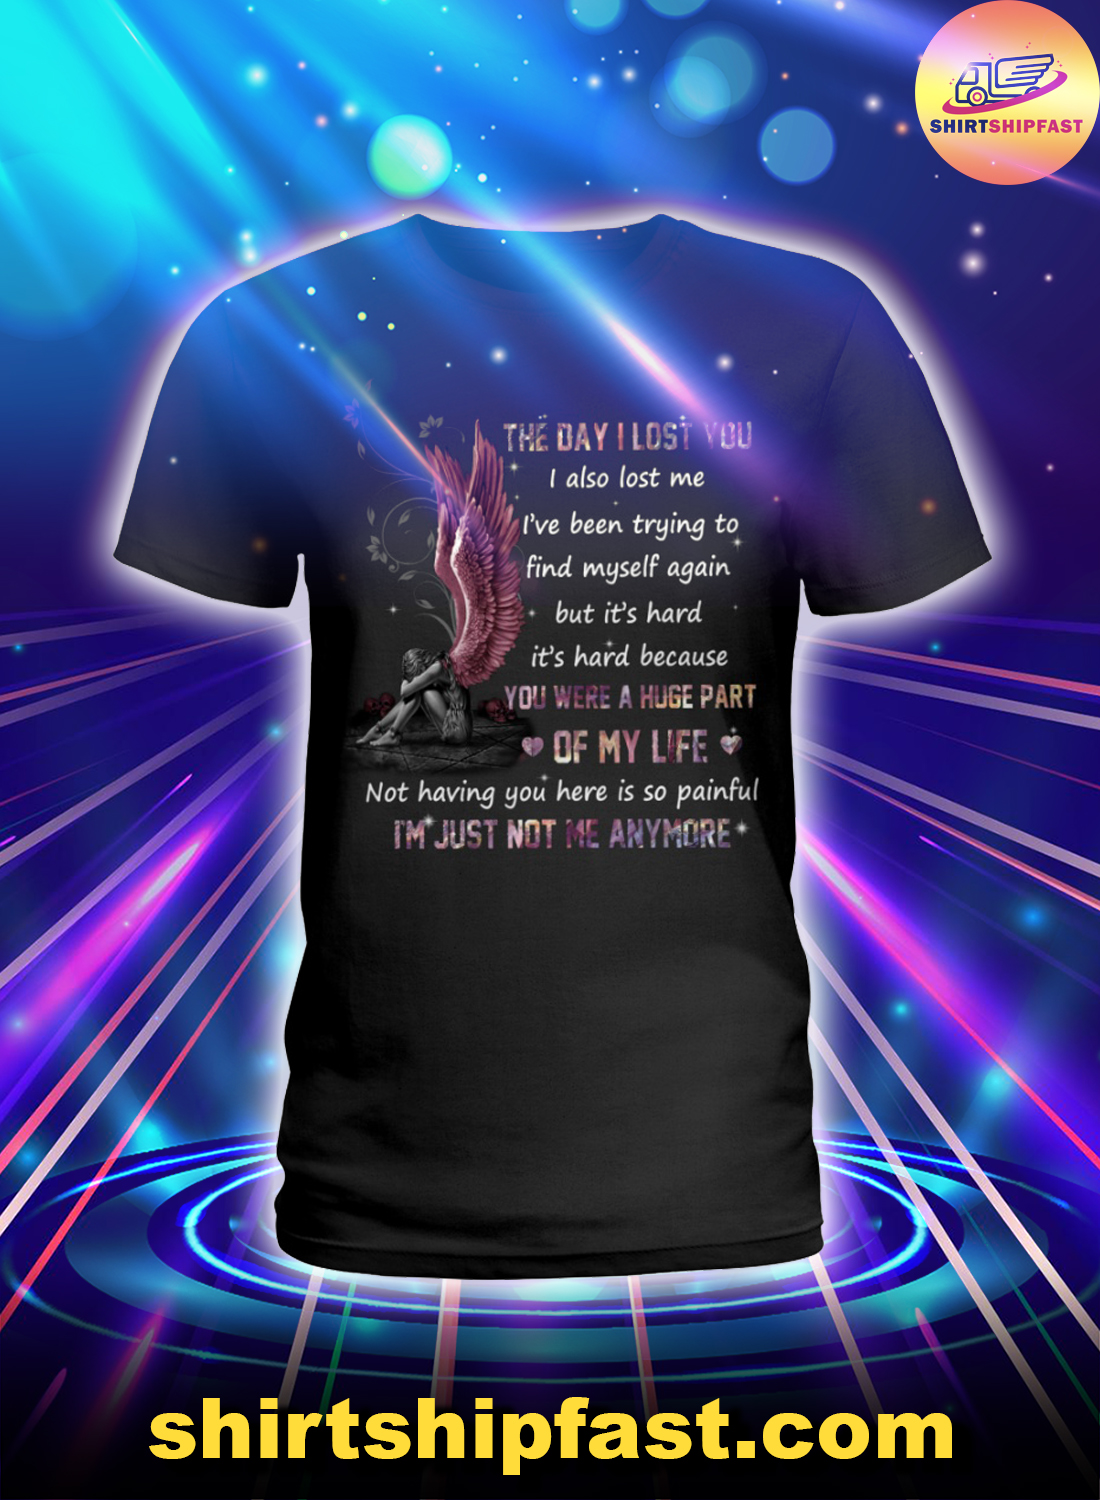 Angel The day I lost you I also lost me lady shirt